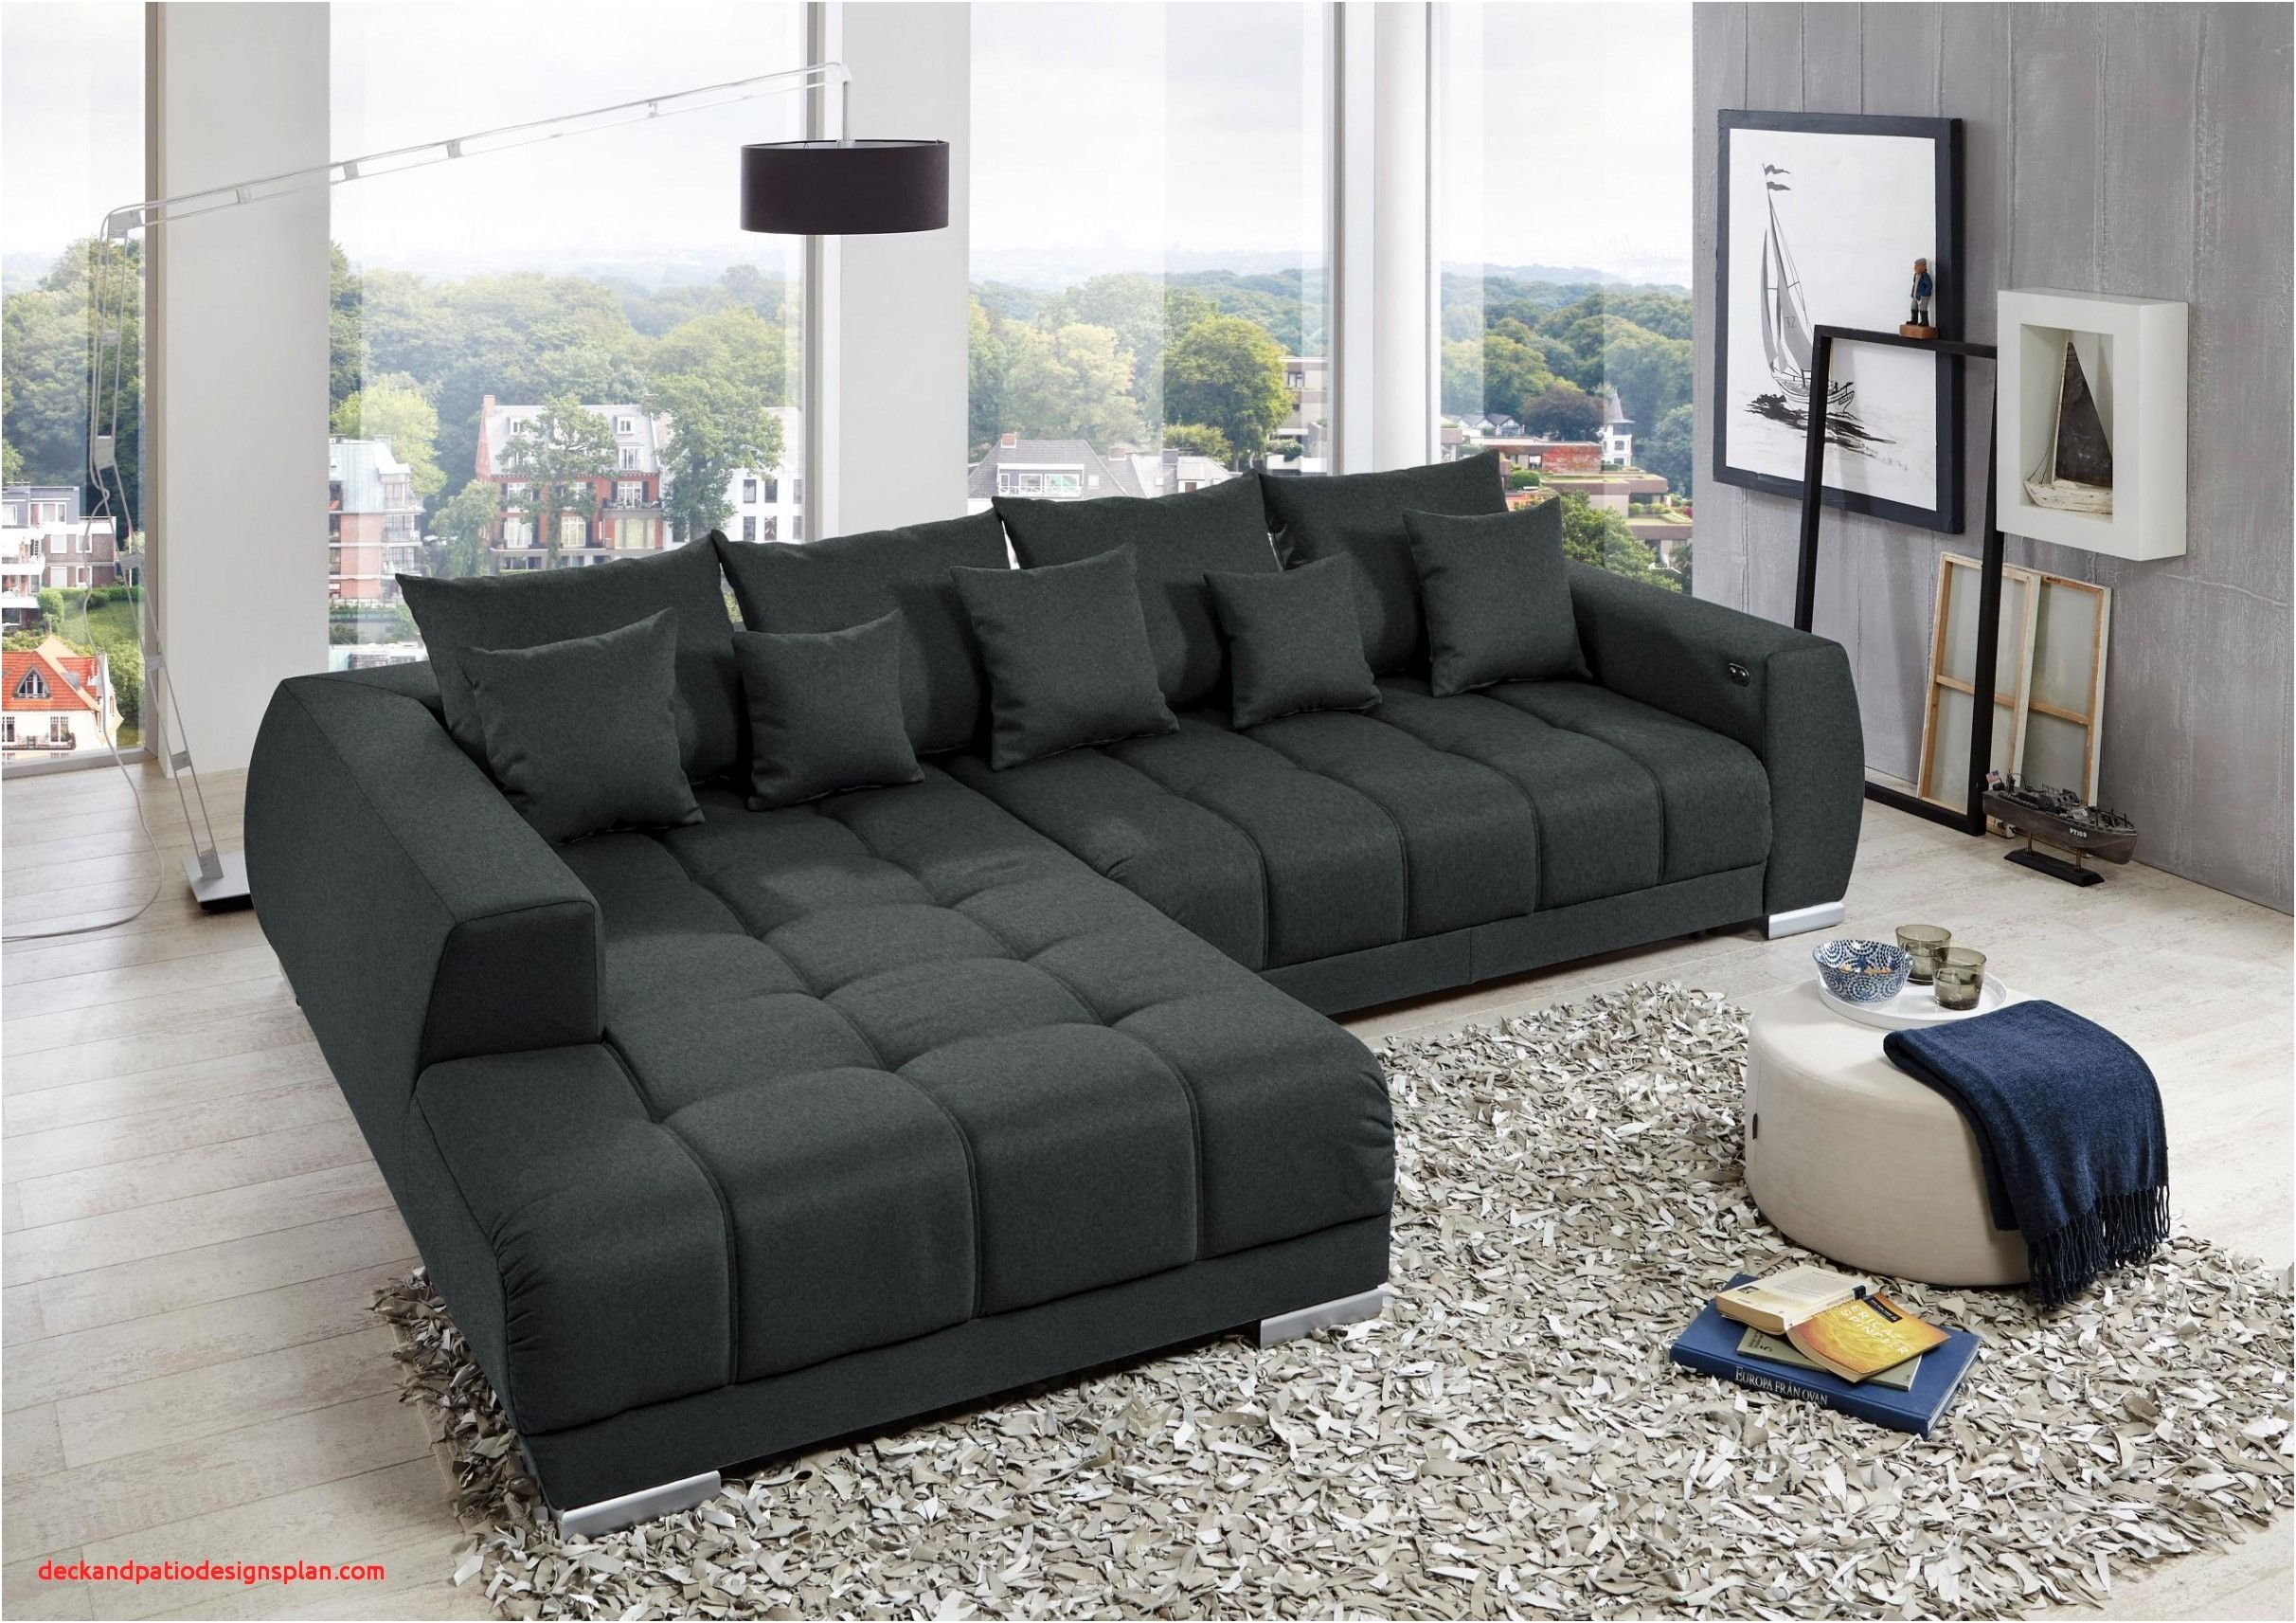 Graues Sofa Best Graues Sofa Klein Graues Sofa Graue Couch 0d Archives In 2020 Vintage Bedroom Furniture Cheap Sofa Sets Furniture